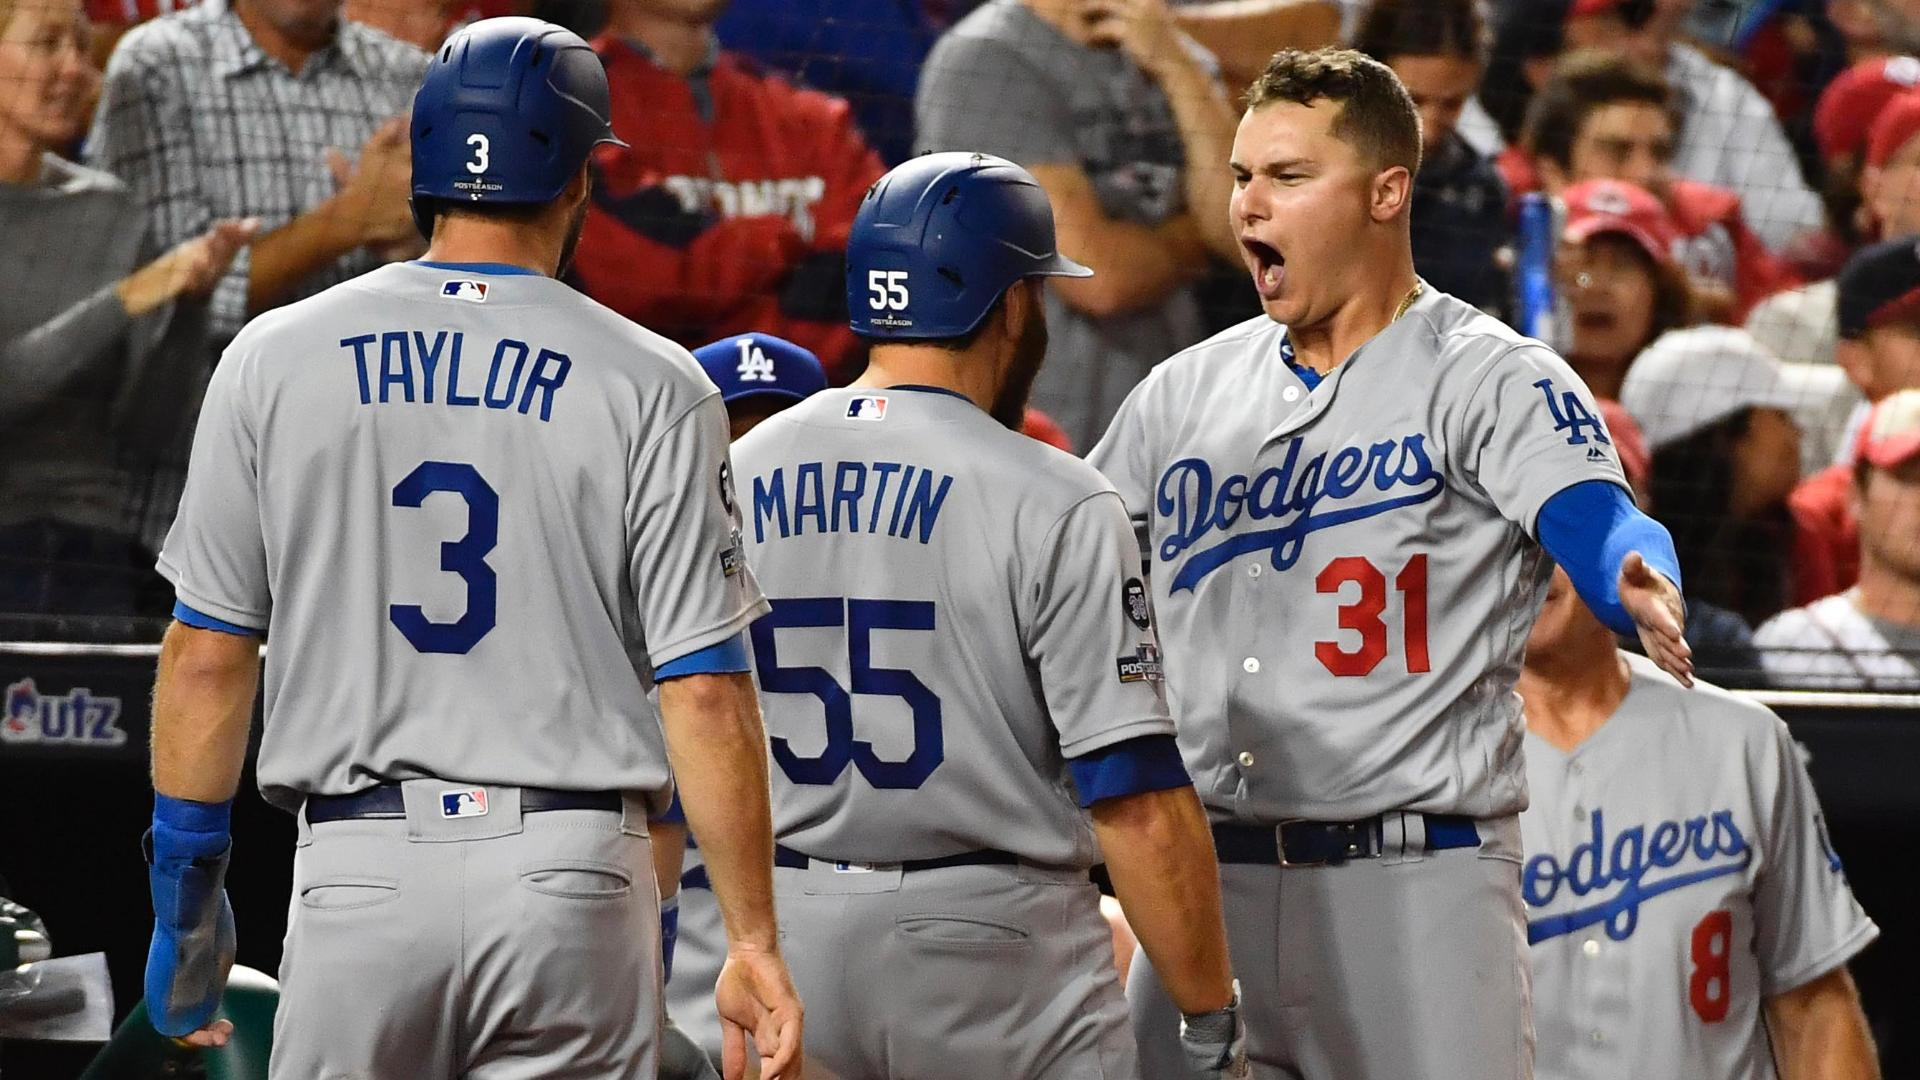 Dodgers erupt for 7 runs in 6th inning